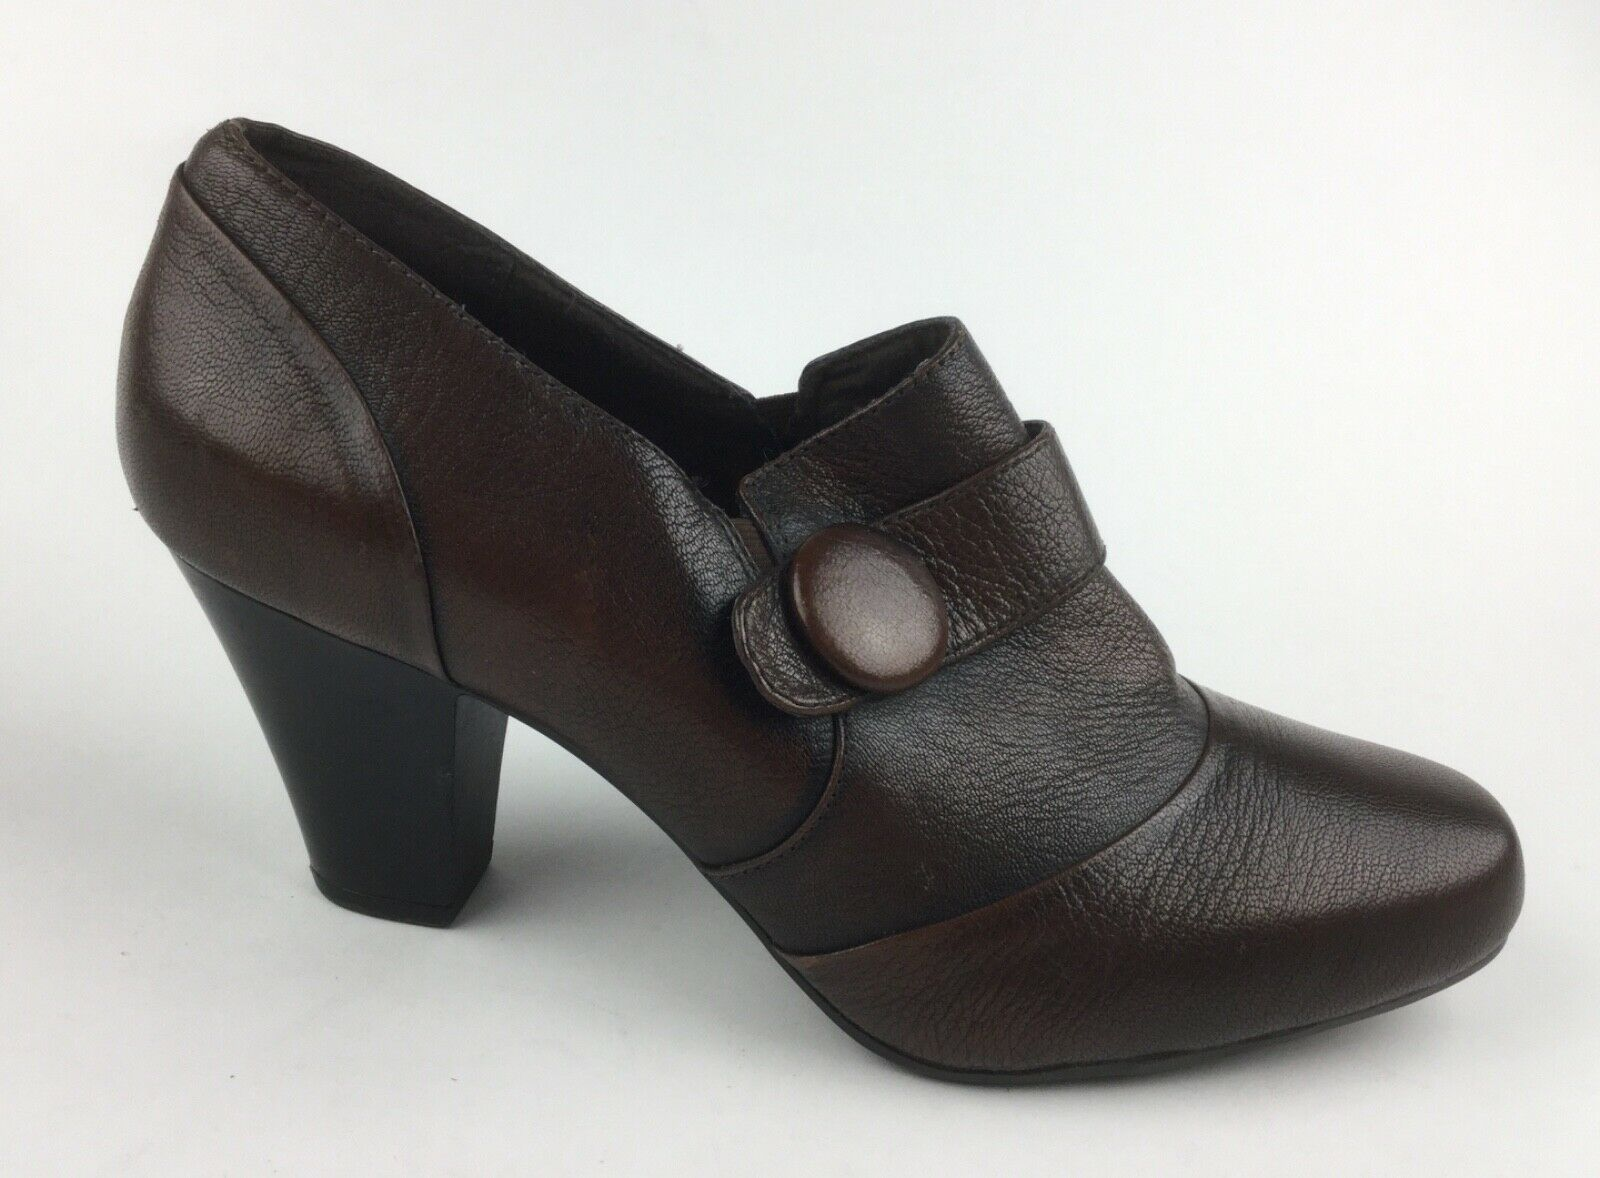 Clarks Bendables Womens Brown Leather Ankle Boots Heels Sz US 11